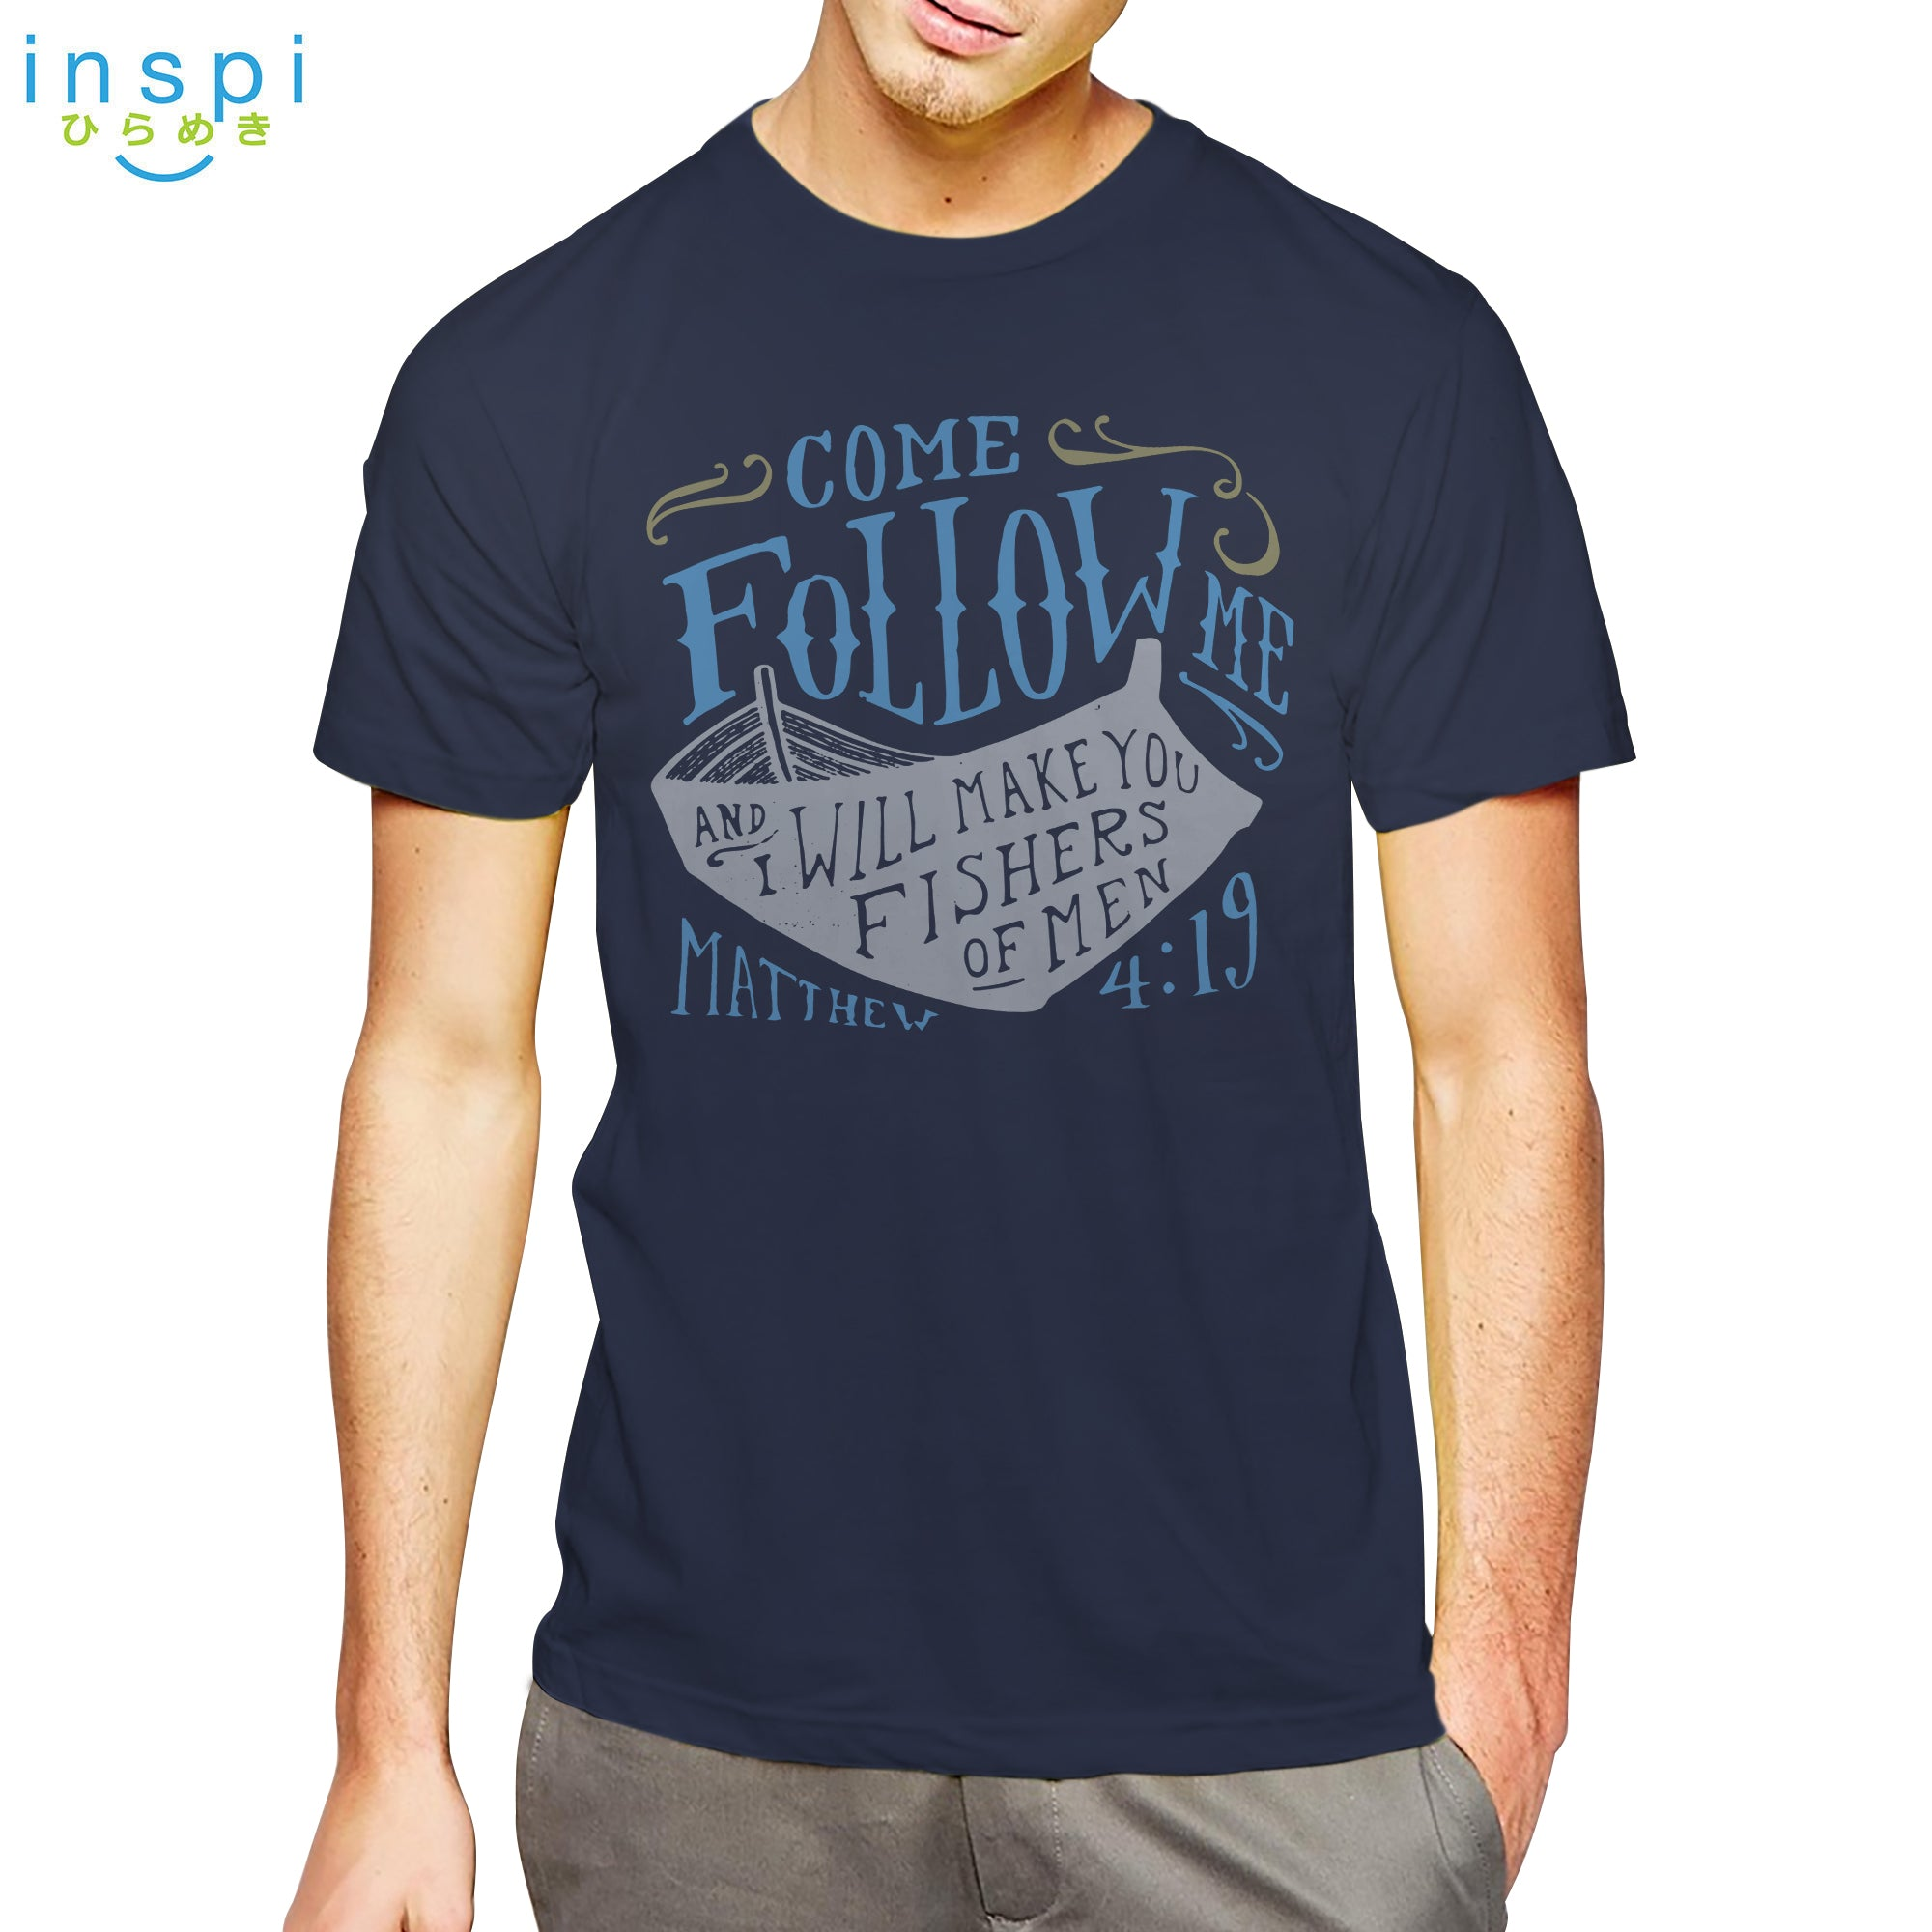 INSPI shirt Fishers of Men Graphic Tshirt in Navy Blue